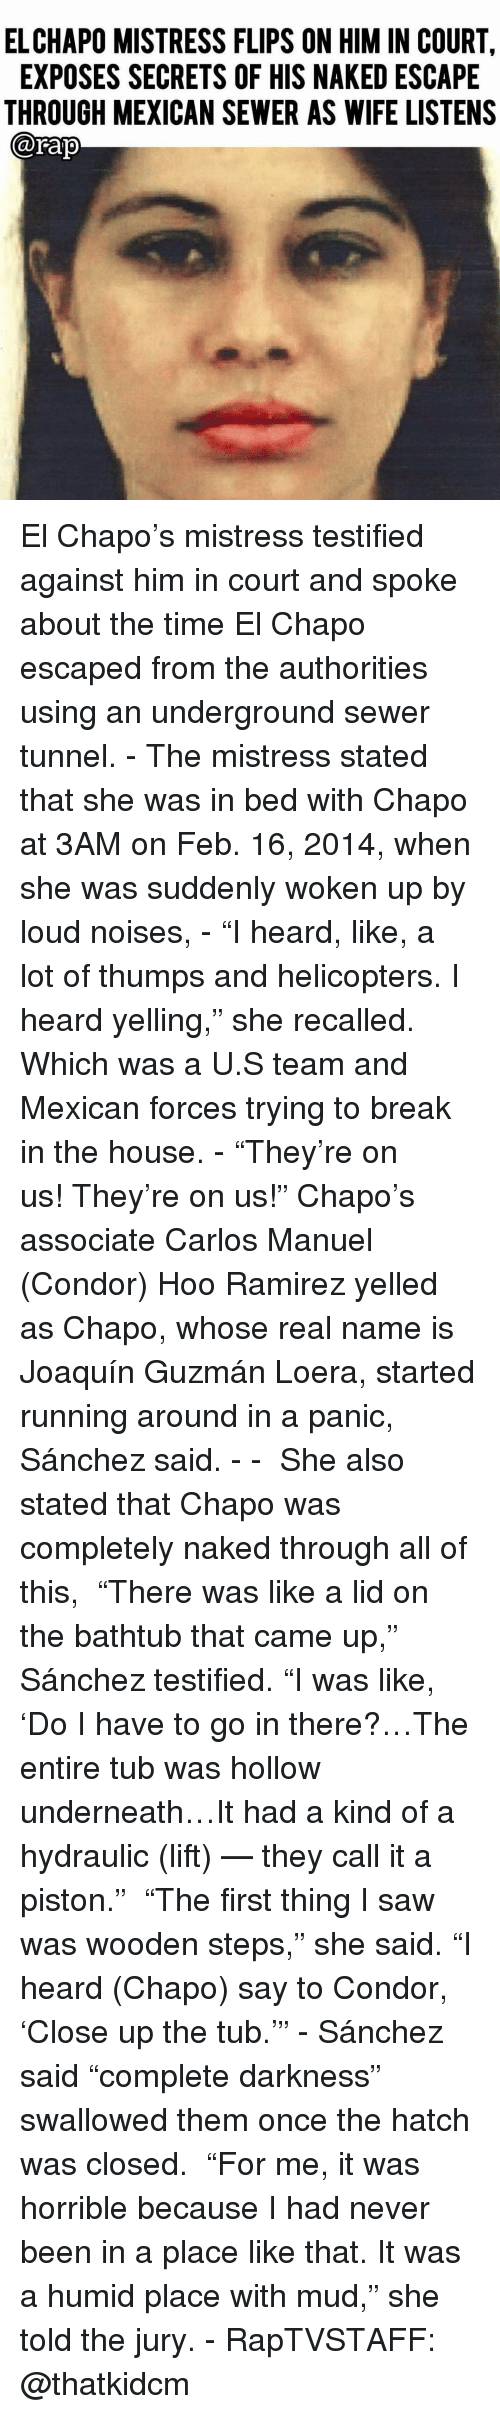 """El Chapo, Joaquín Guzmán, and Memes: ELCHAPO MISTRESS FLIPS ON HIM IN COURT,  EXPOSES SECRETS OF HIS NAKED ESCAPE  THROUGH MEXICAN SEWER AS WIFE LISTENS  @Fap El Chapo's mistress testified against him in court and spoke about the time El Chapo escaped from the authorities using an underground sewer tunnel. - The mistress stated that she was in bed with Chapo at 3AM on Feb. 16, 2014, when she was suddenly woken up by loud noises, - """"I heard, like, a lot of thumps and helicopters. I heard yelling,"""" she recalled. Which was a U.S team and Mexican forces trying to break in the house. - """"They're on us! They're on us!"""" Chapo's associate Carlos Manuel (Condor) Hoo Ramirez yelled as Chapo, whose real name is Joaquín Guzmán Loera, started running around in a panic, Sánchez said. - -  She also stated that Chapo was completely naked through all of this,  """"There was like a lid on the bathtub that came up,"""" Sánchez testified. """"I was like, 'Do I have to go in there?…The entire tub was hollow underneath…It had a kind of a hydraulic (lift) — they call it a piston.""""  """"The first thing I saw was wooden steps,"""" she said. """"I heard (Chapo) say to Condor, 'Close up the tub.'"""" - Sánchez said """"complete darkness"""" swallowed them once the hatch was closed.  """"For me, it was horrible because I had never been in a place like that. It was a humid place with mud,"""" she told the jury. - RapTVSTAFF: @thatkidcm"""